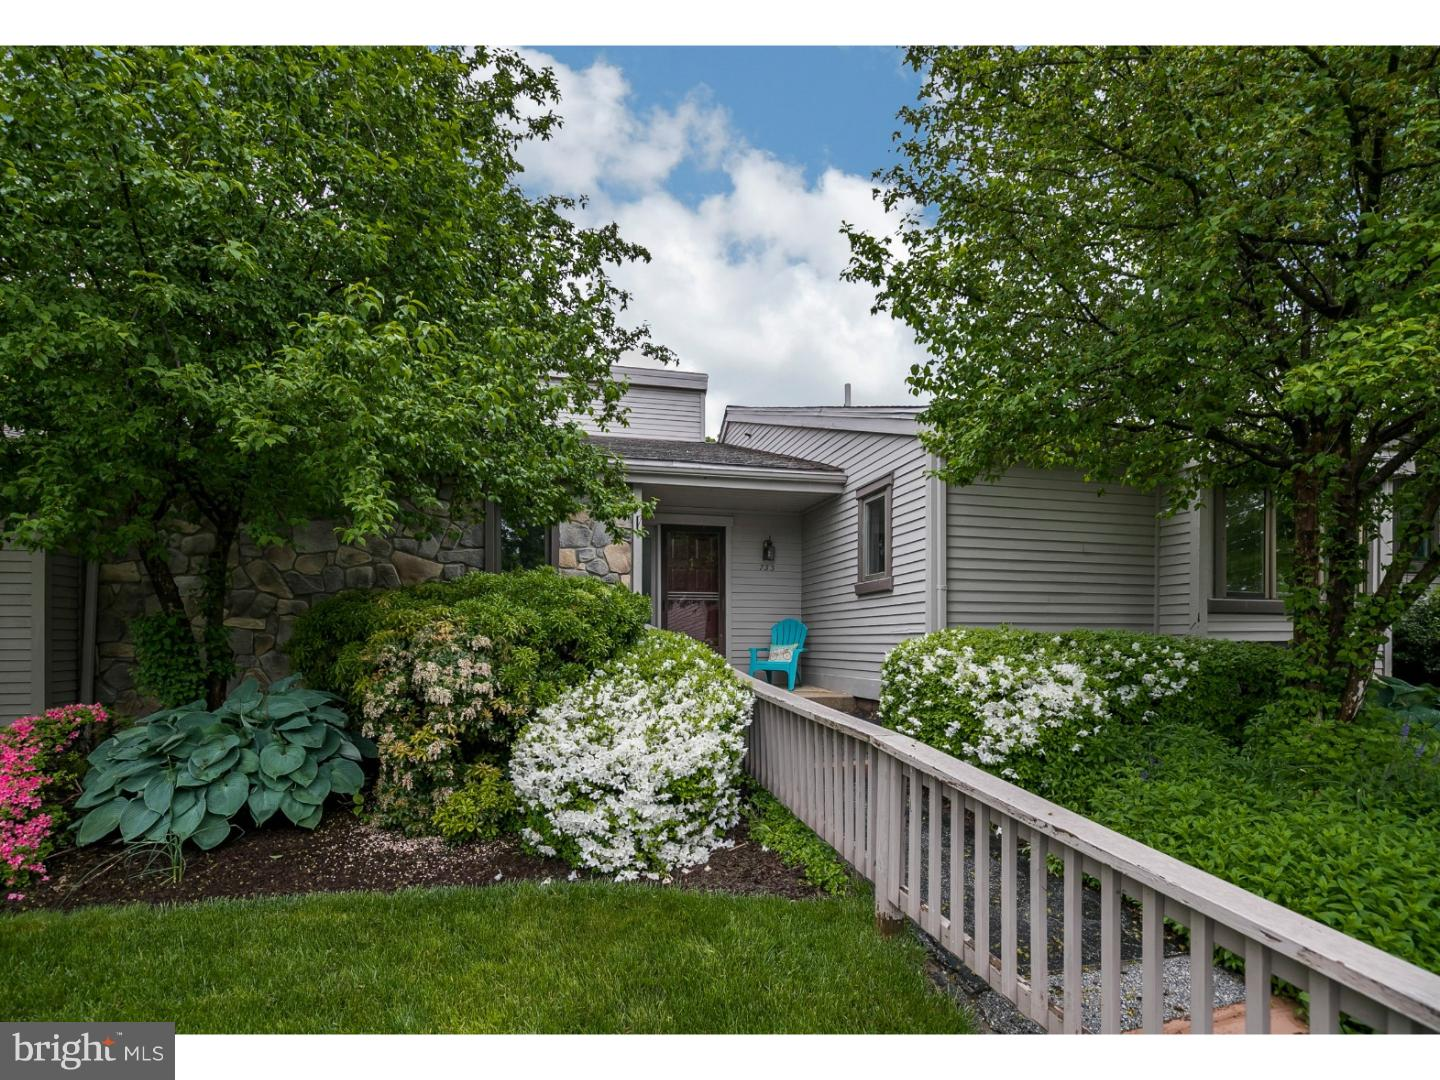 733 Inverness Drive West Chester, PA 19380